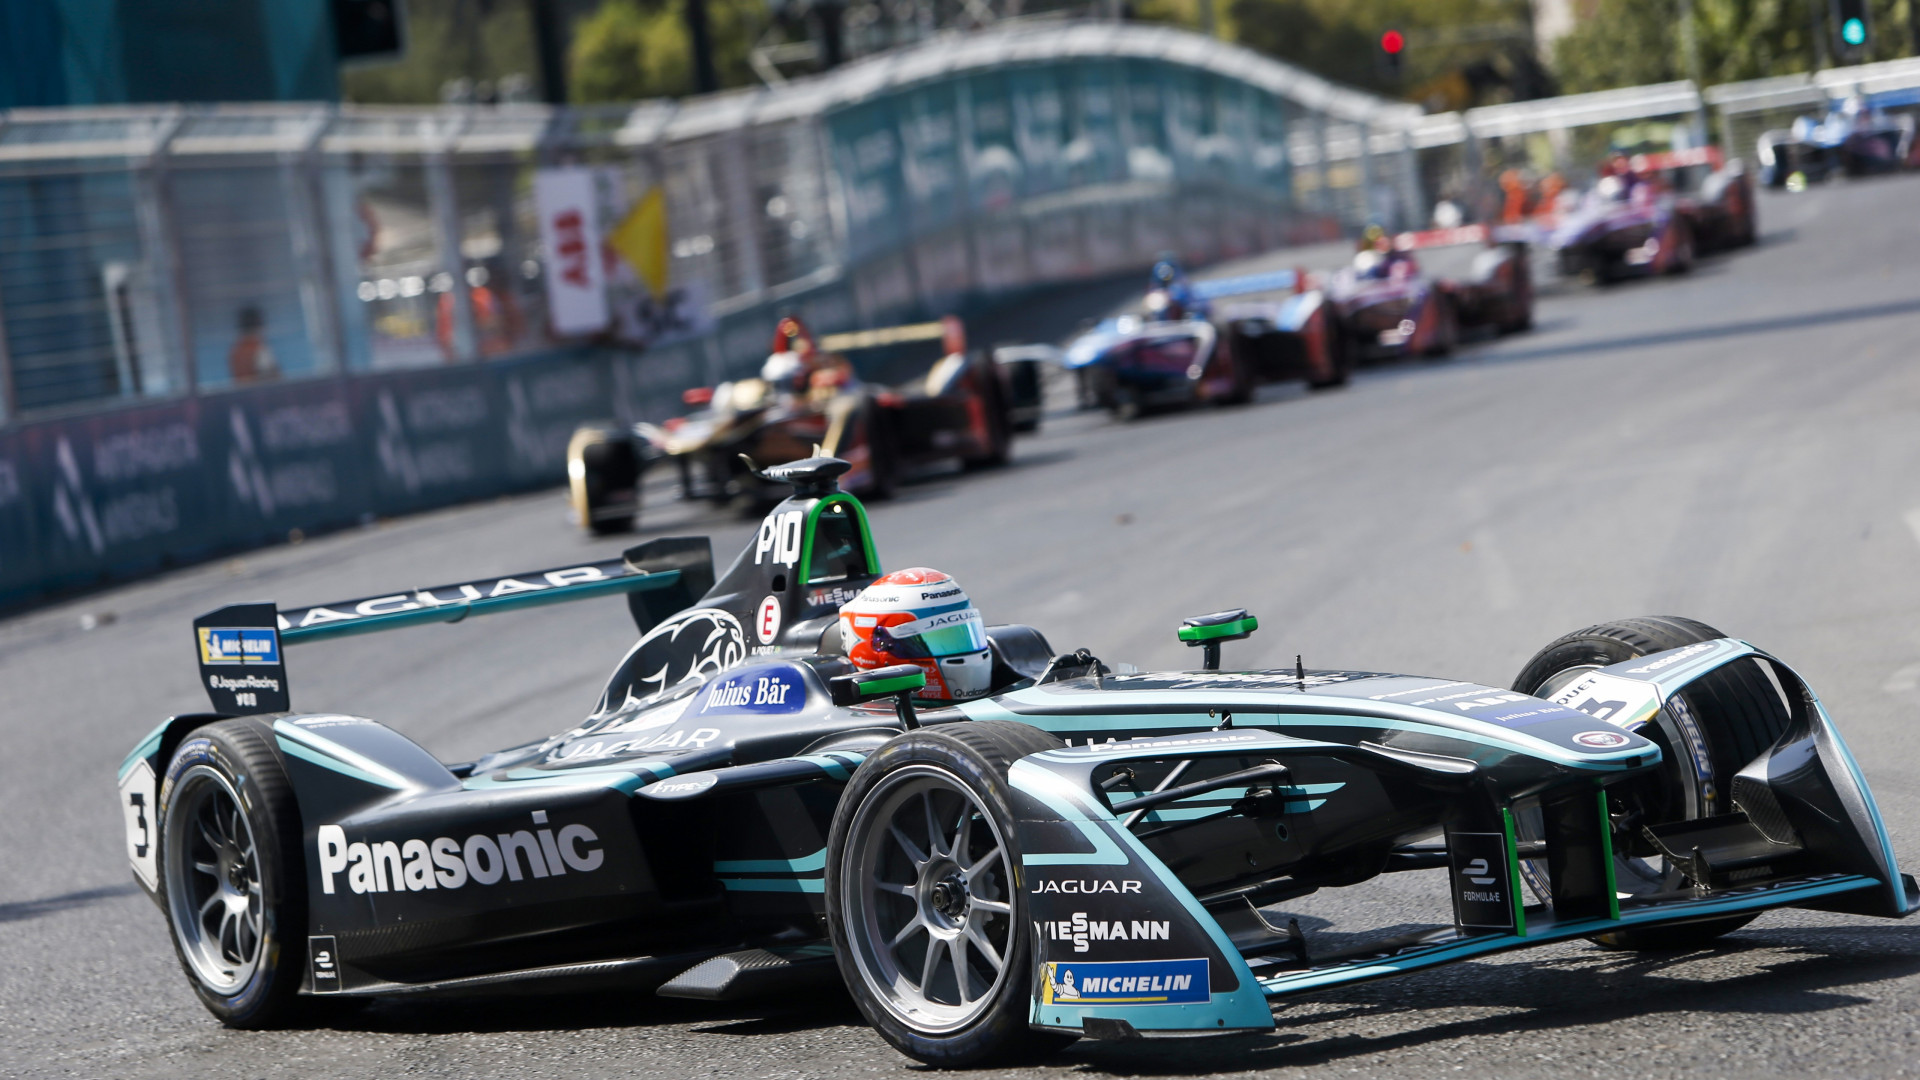 Panasonic Jaguar Racing | 1920x1080 wallpaper